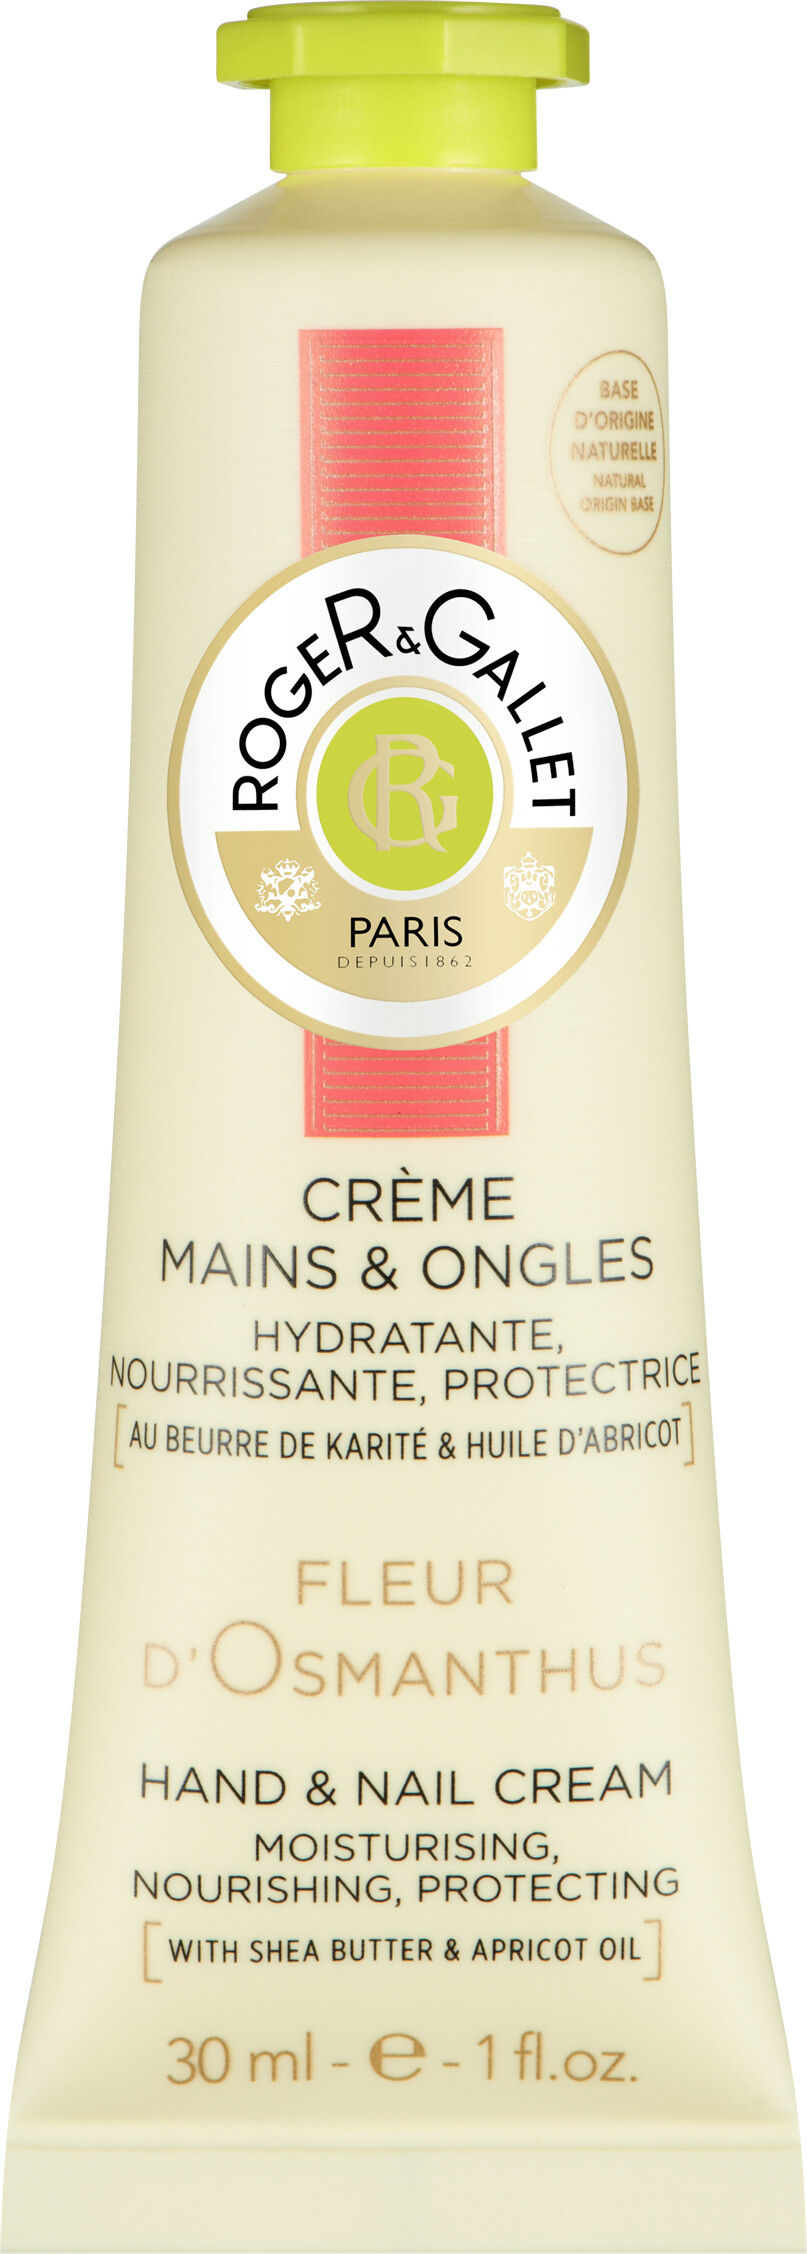 Roger Gallet Fleur D Osmanthus Hand And Nail Cream